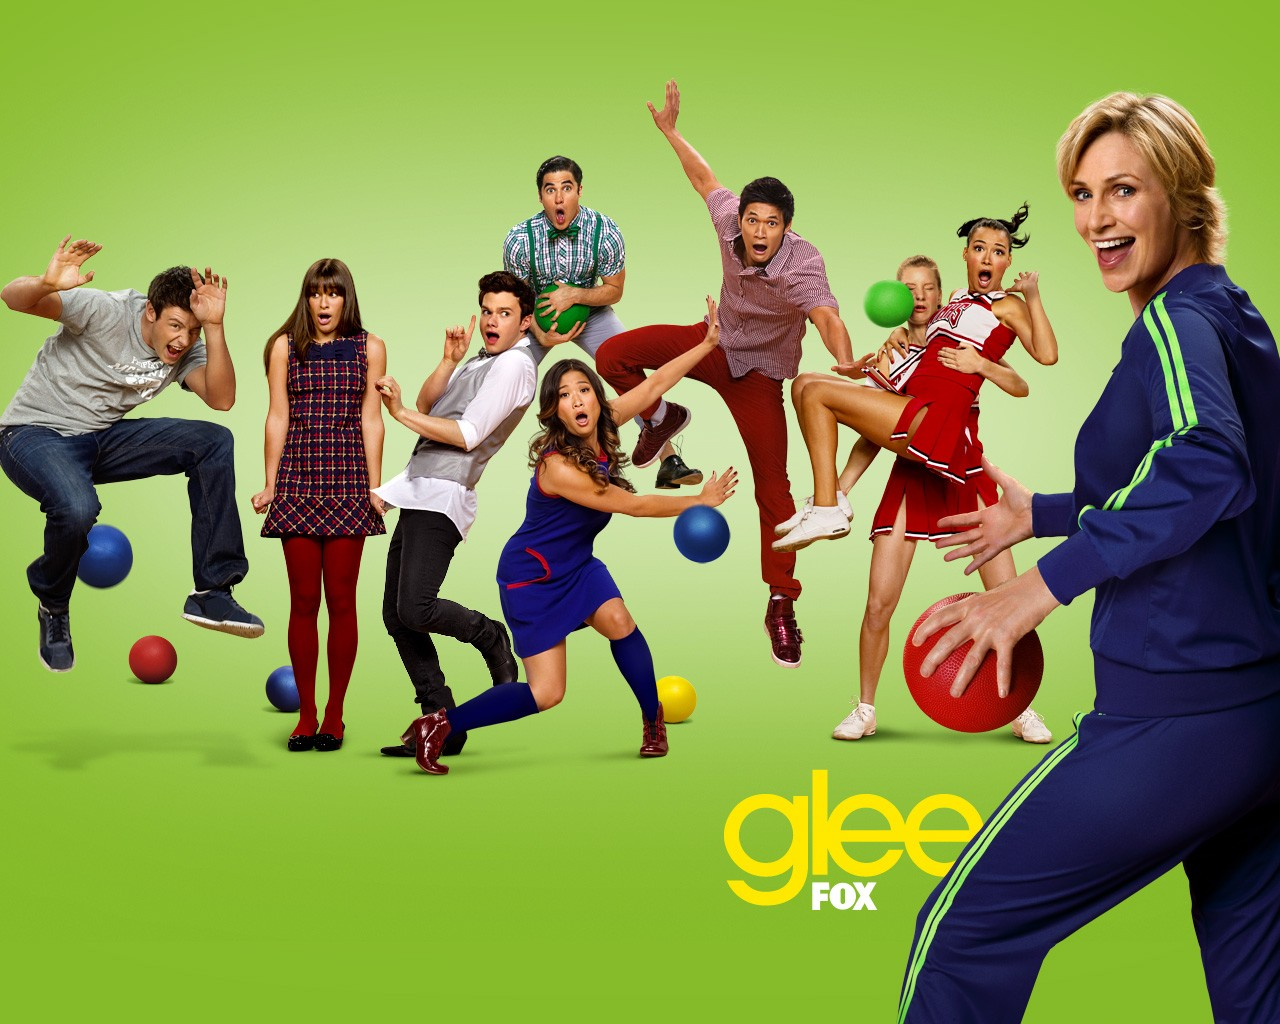 tv show glee wallpaper 20029963 size 1280x1024 more glee wallpaper 1280x1024